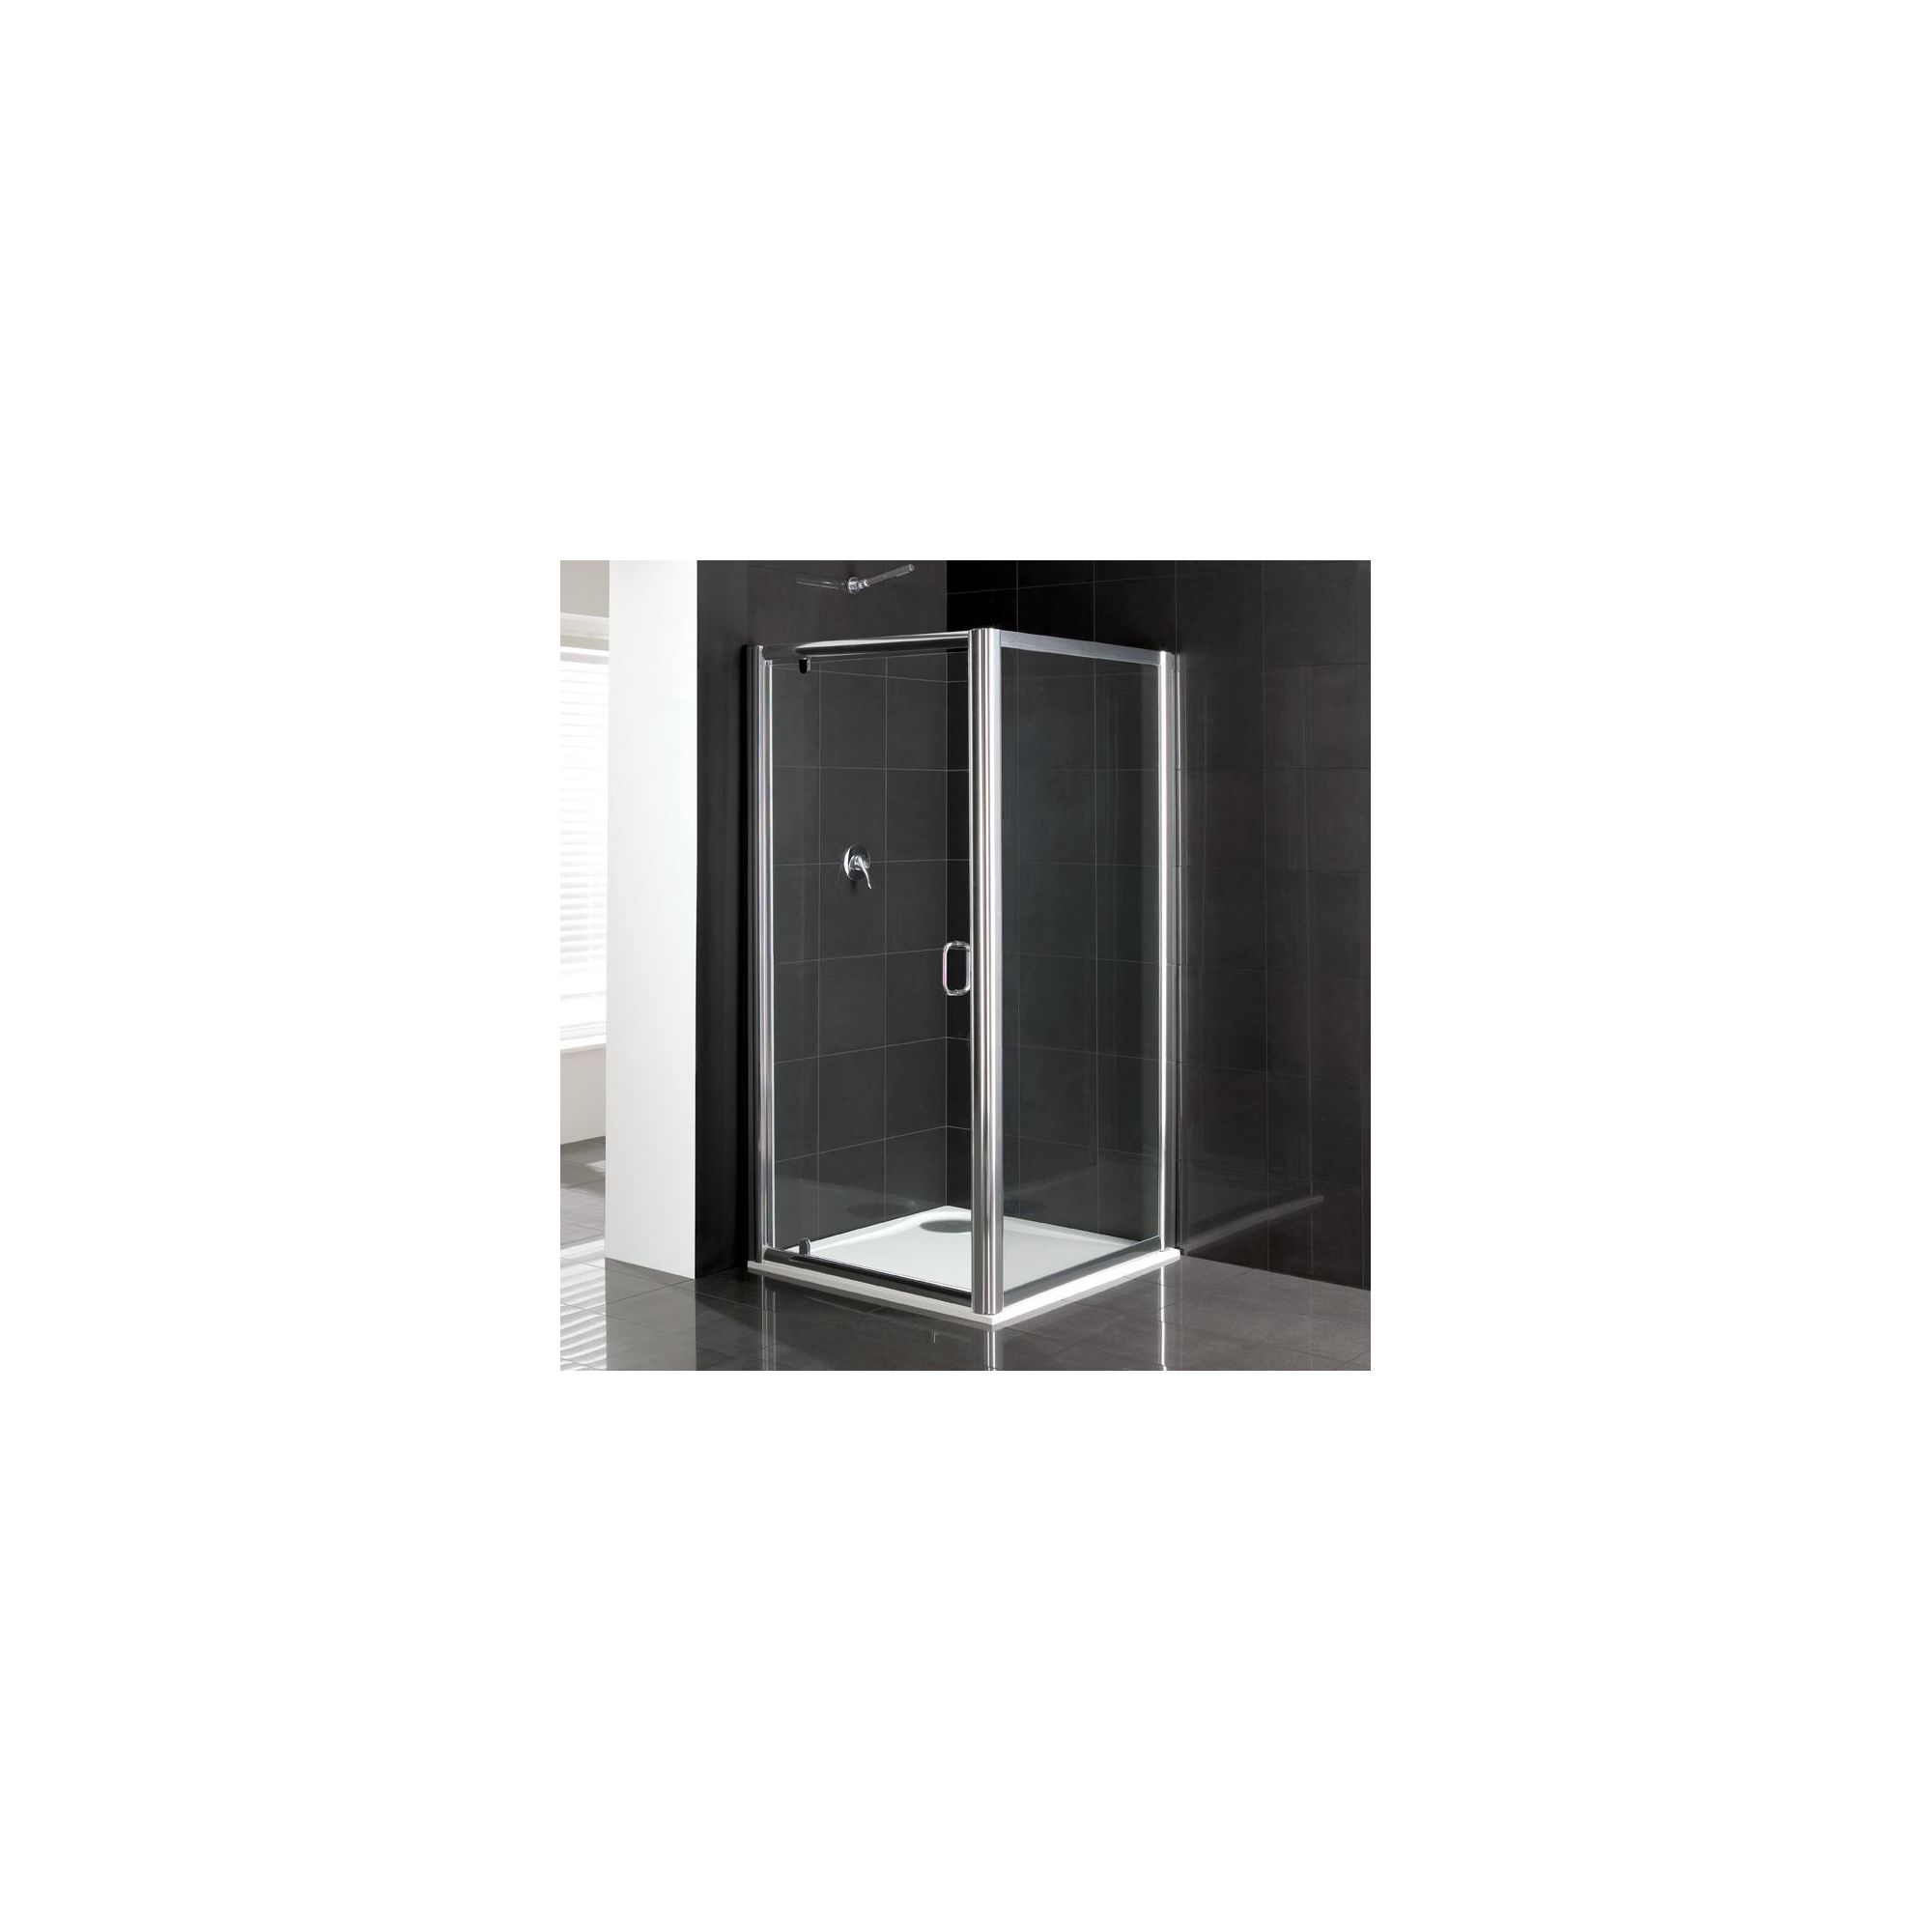 Duchy Elite Silver Pivot Door Shower Enclosure, 900mm x 700mm, Standard Tray, 6mm Glass at Tesco Direct